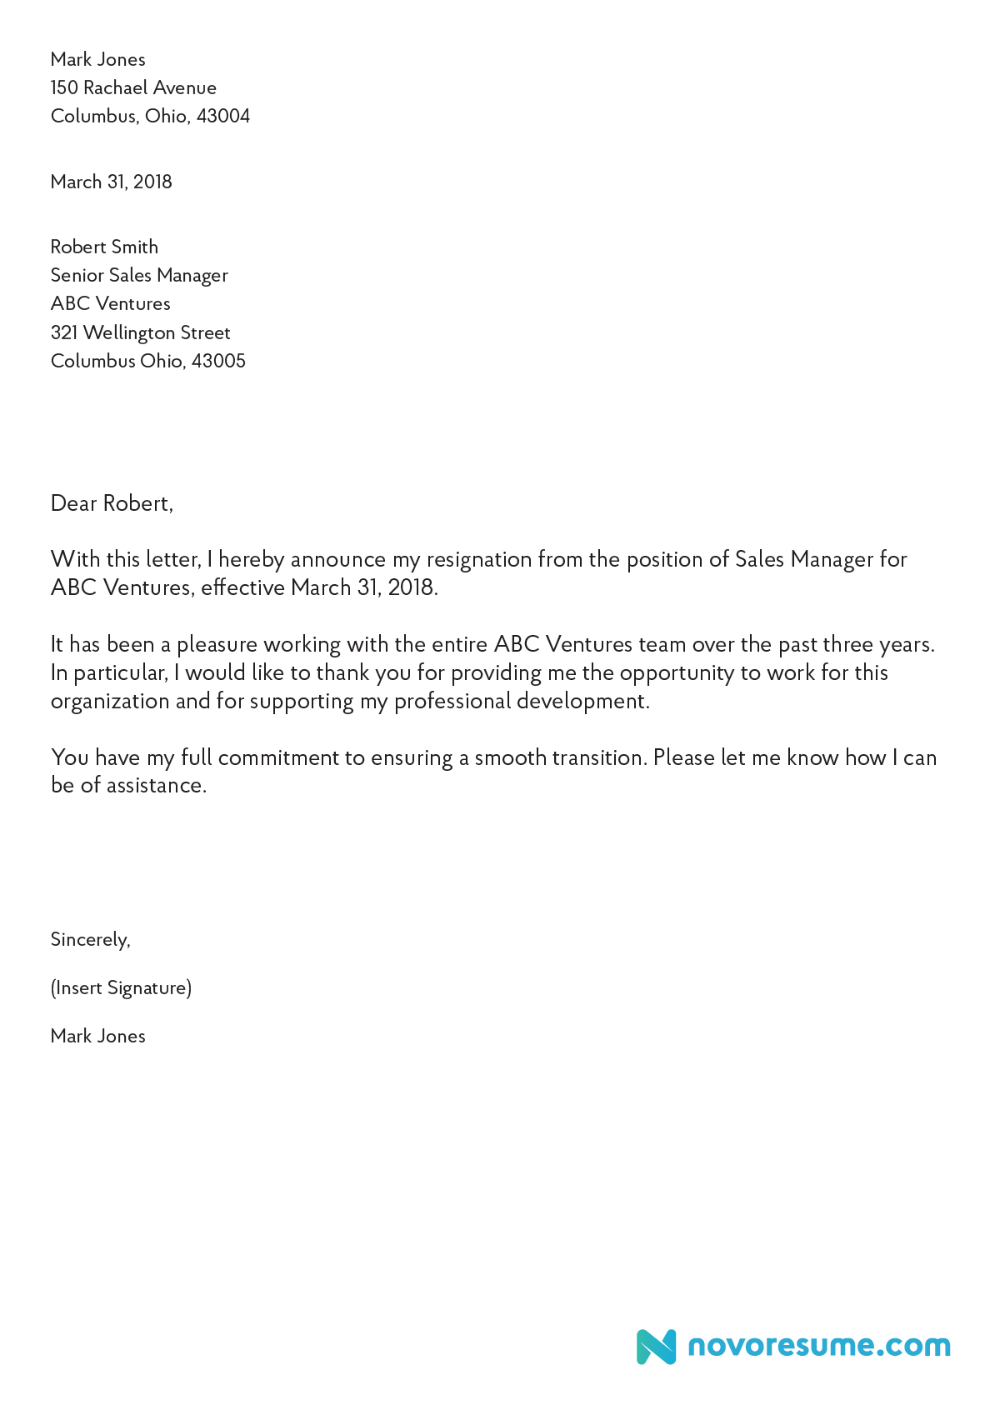 How To Write A Letter Of Resignation Extensive Guide